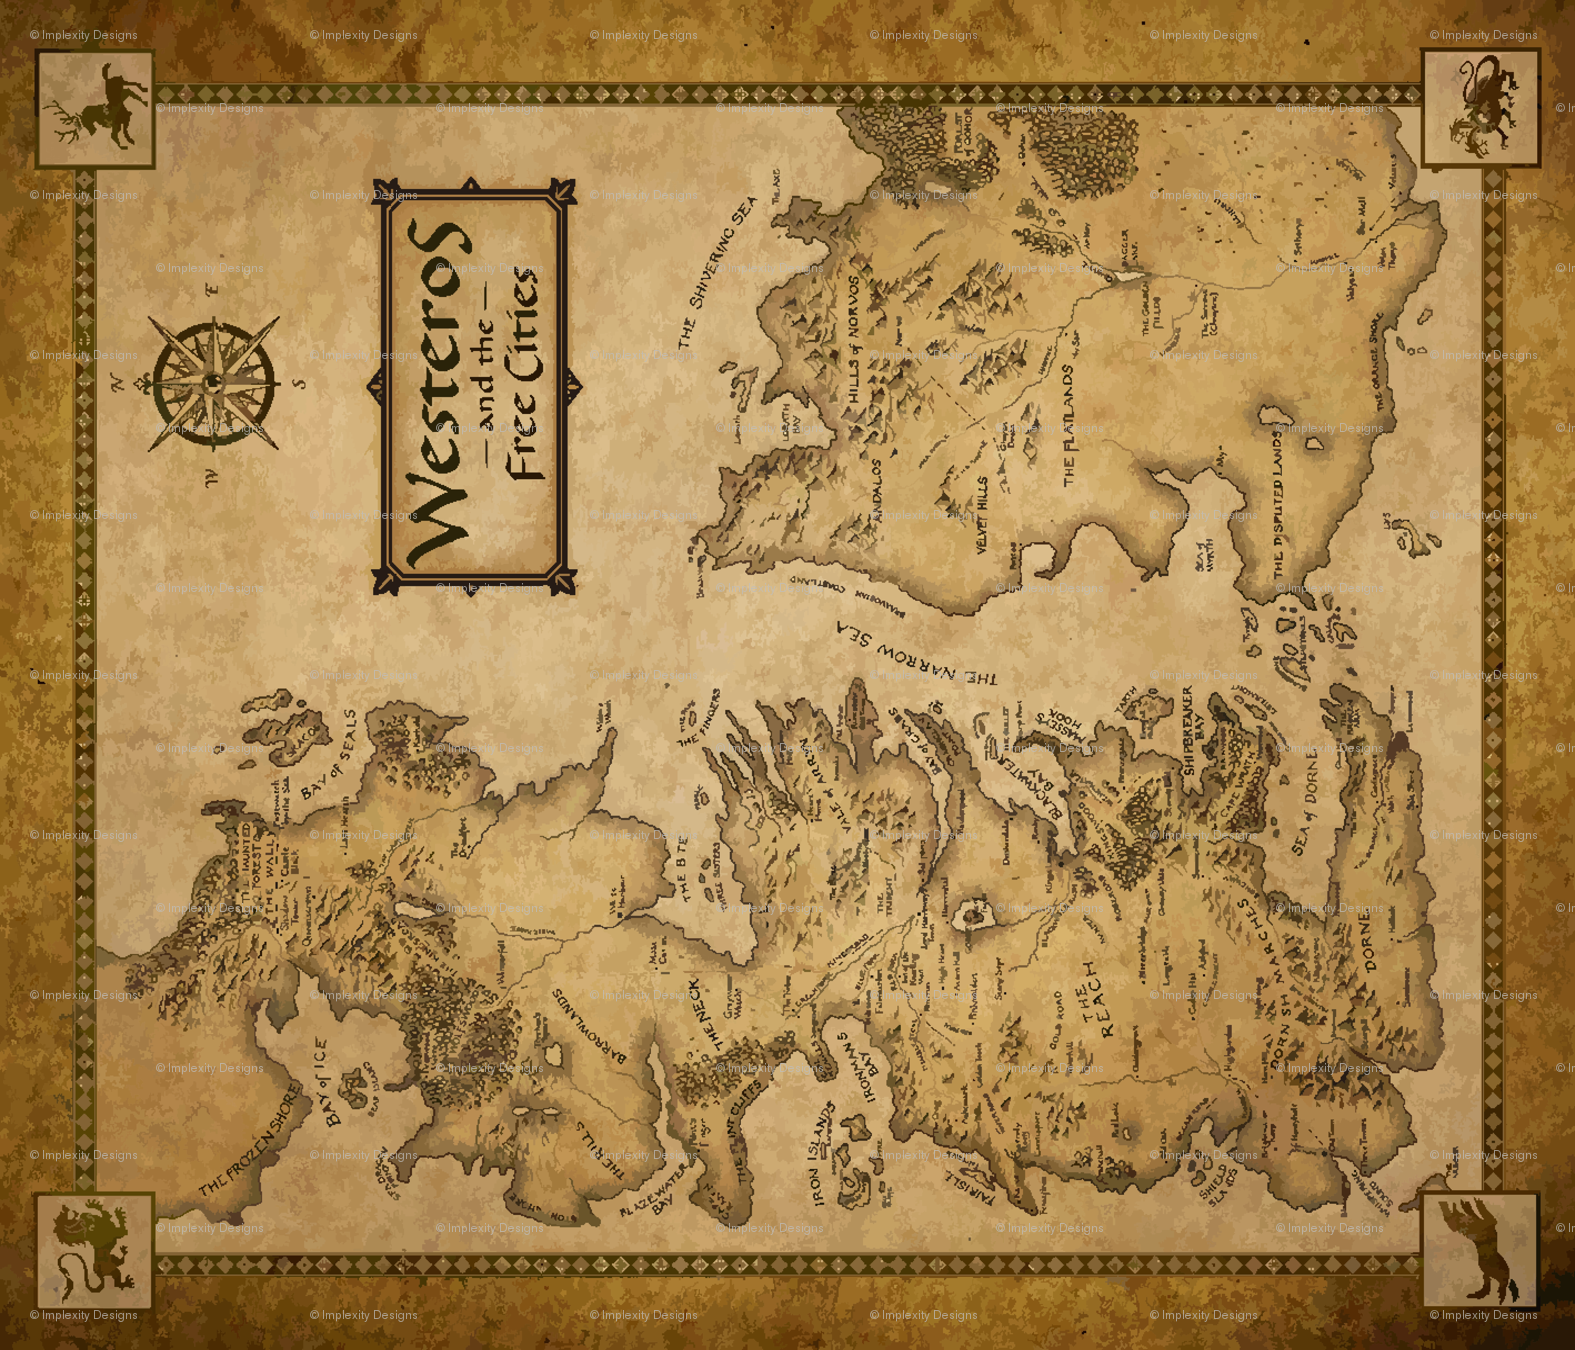 official map of game thrones with Westeros Wallpaper on Fgdfgbfgbdfg as well 4dcityscape in addition Spartacus Season 2 Wallpapers moreover Resources  Civ5 in addition Zero Dark Thirty Wallpapers 1.